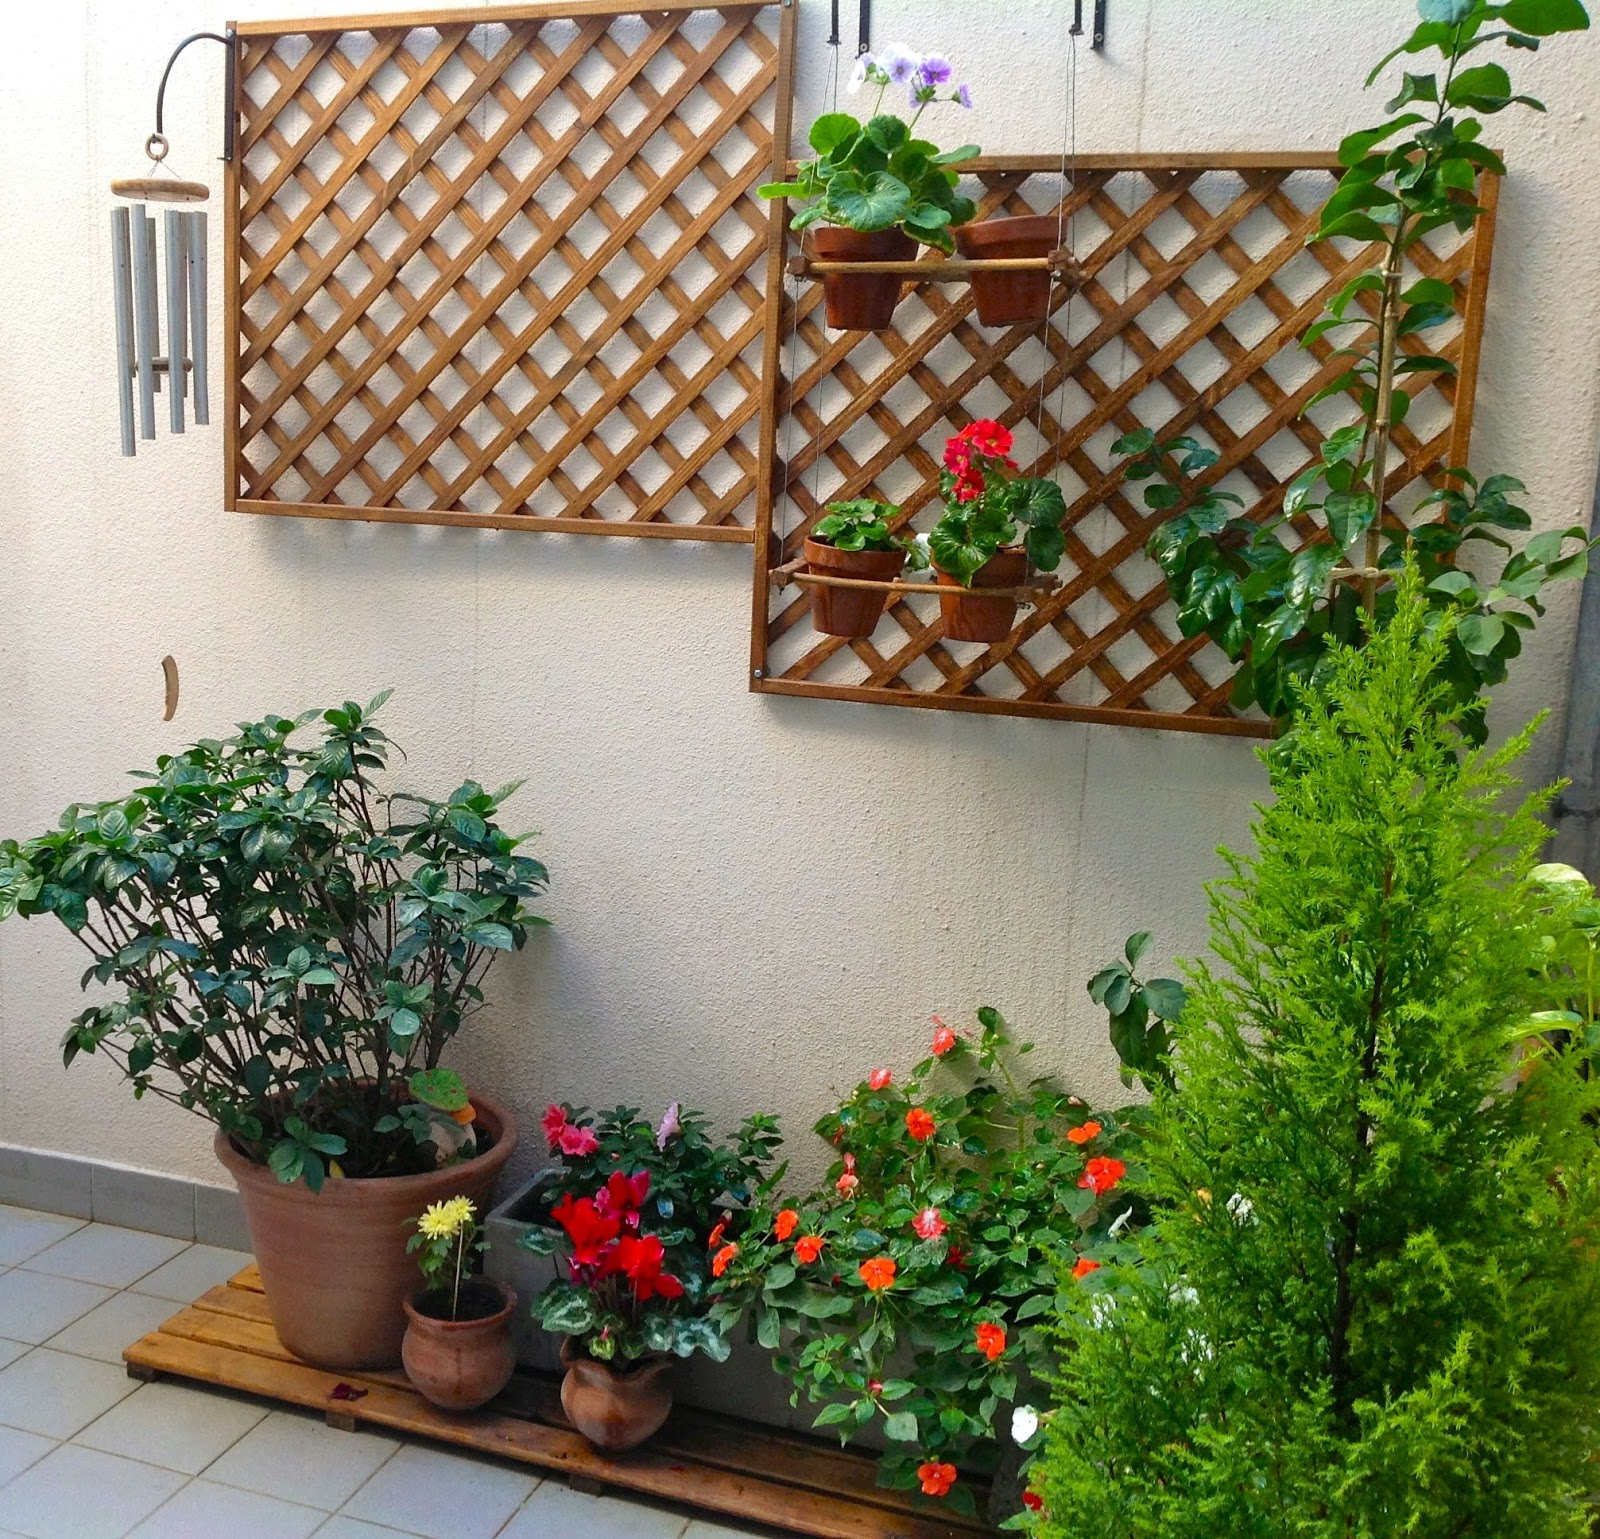 Mis amigas no son bloggers pero decoran sus casas belinda for Decoracion de jardin pequeno sencillo